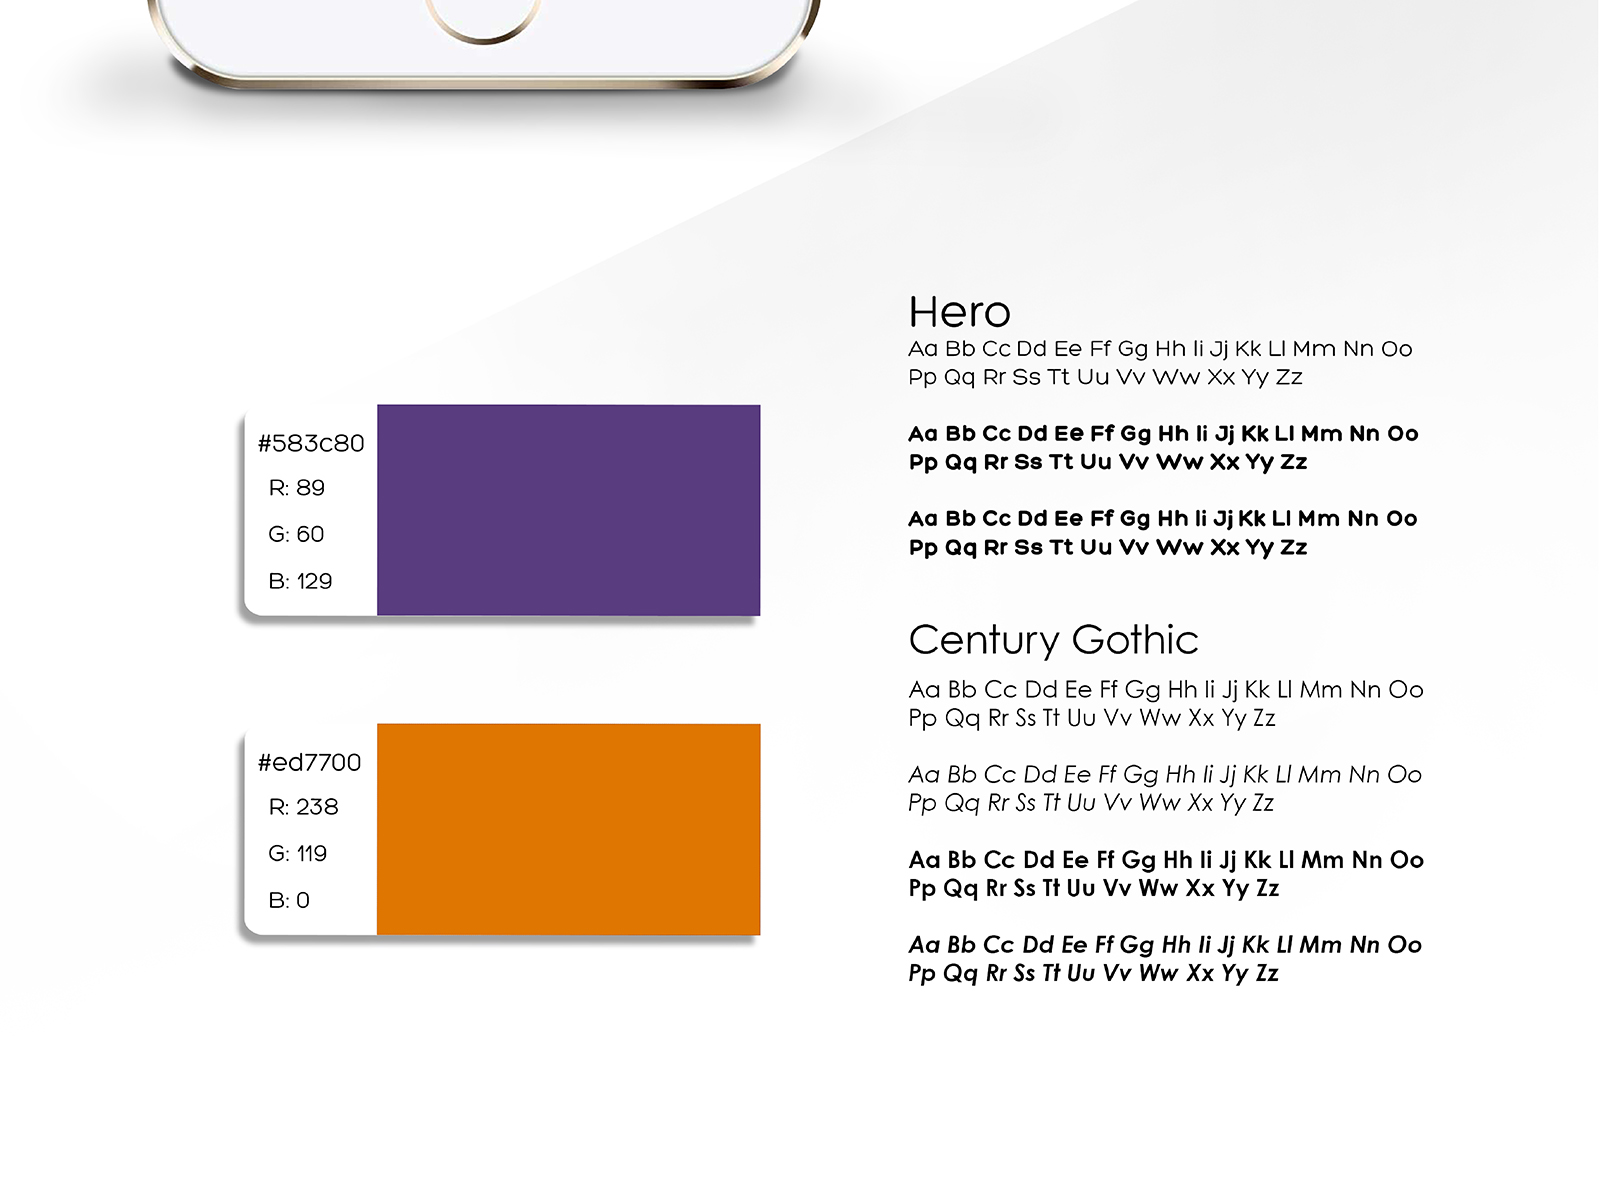 Xpax brand colour codes and values alongside their corporate fonts